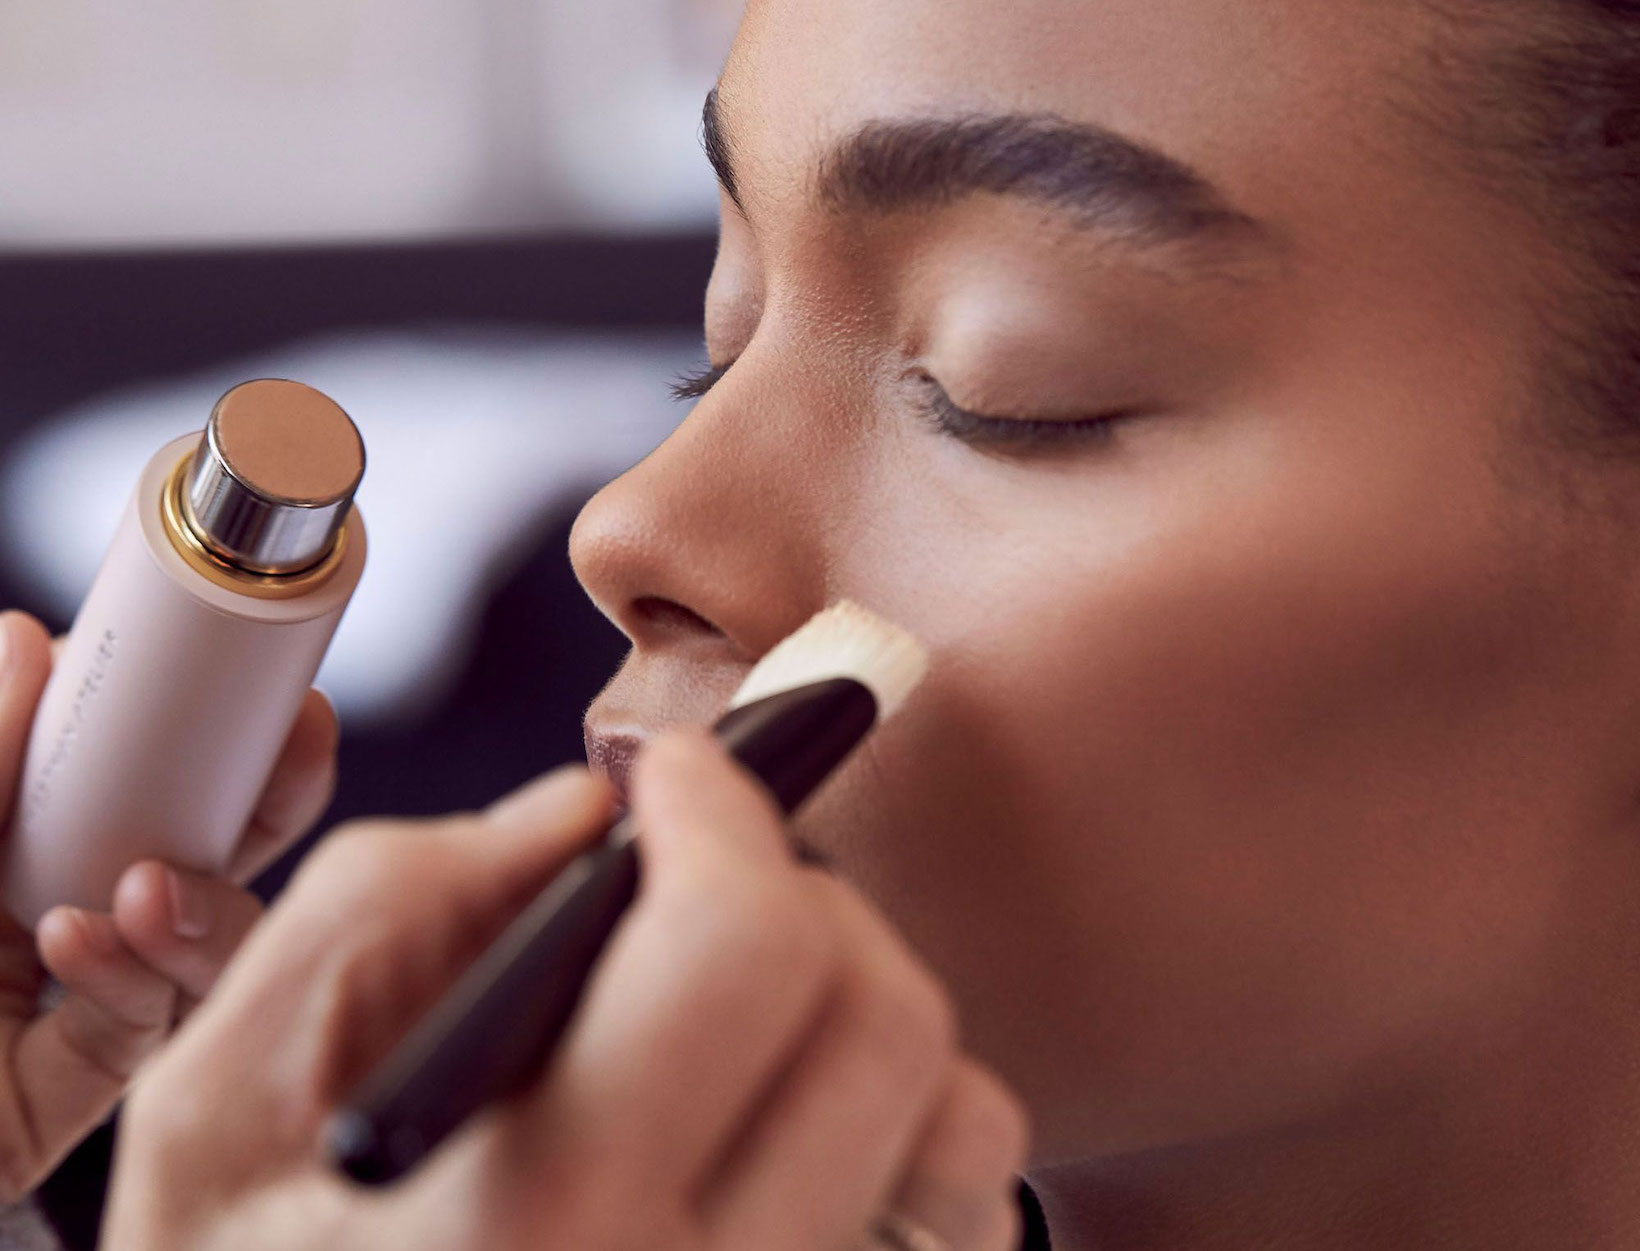 For the most natural look, use a brush – Gucci Westman's easy-to-follow guide